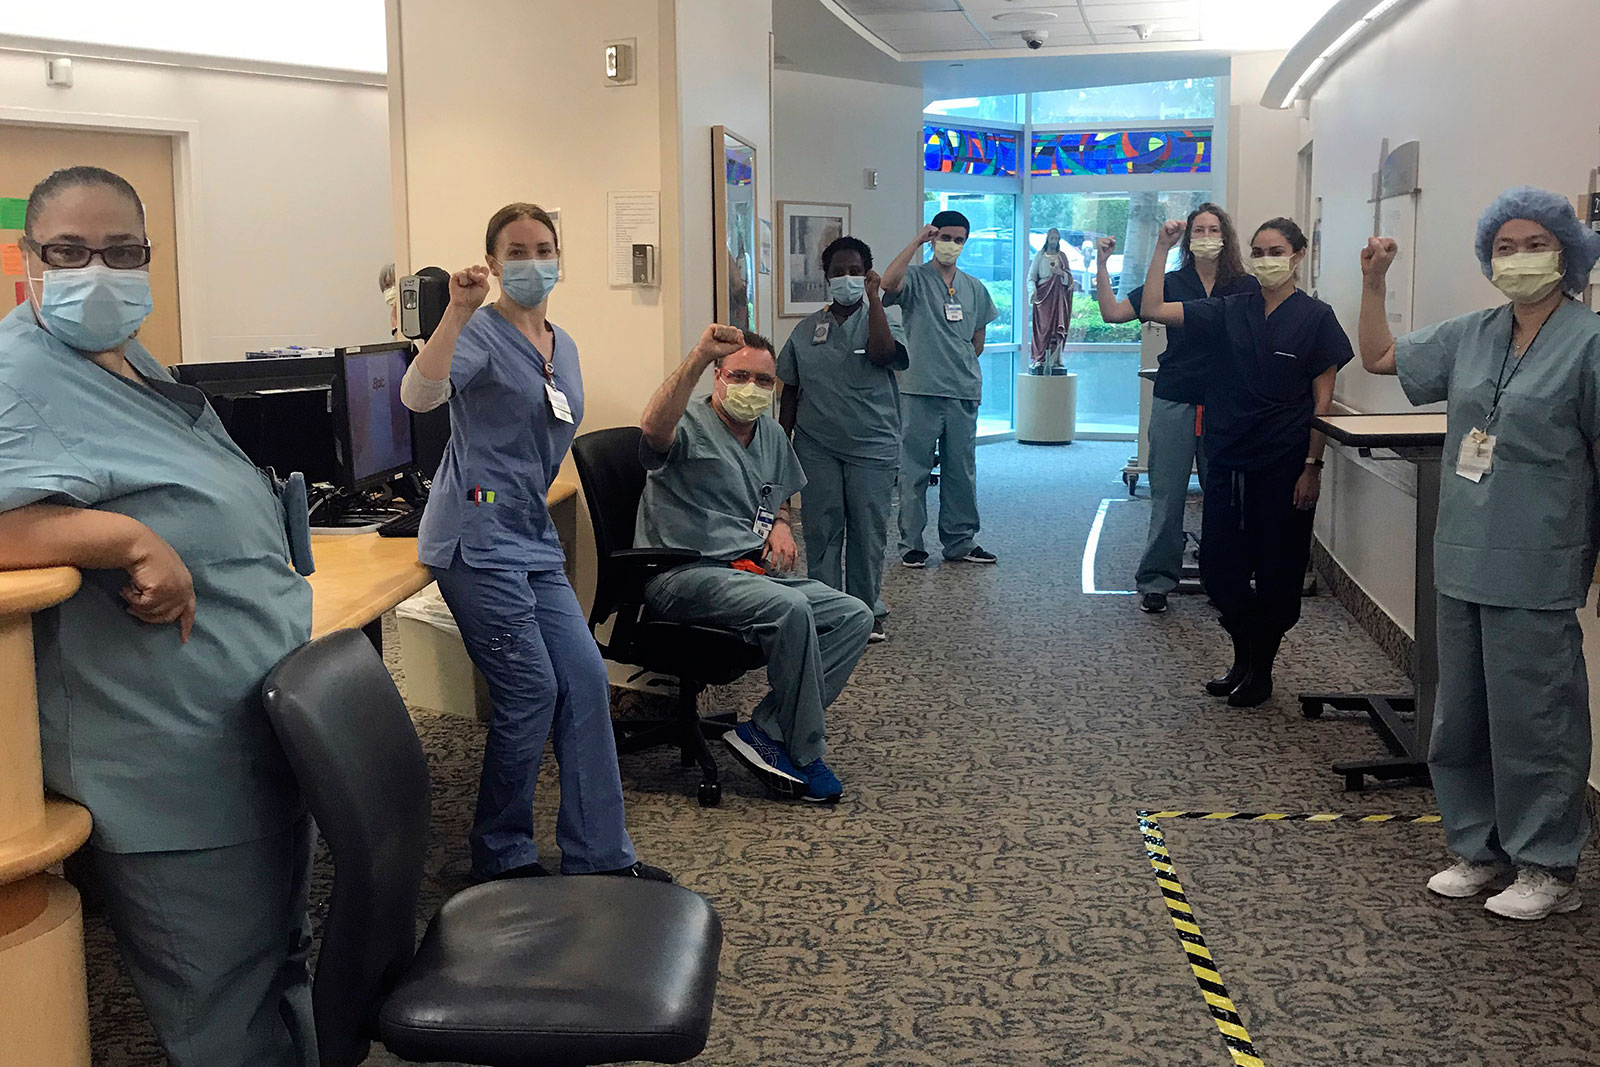 Nurses raise their fists in solidarity after telling managers they won't care for Covid-19 patients without N95 respirator masks to protect themselves at Providence Saint John's Health Center in Santa Monica, California, on April 10.